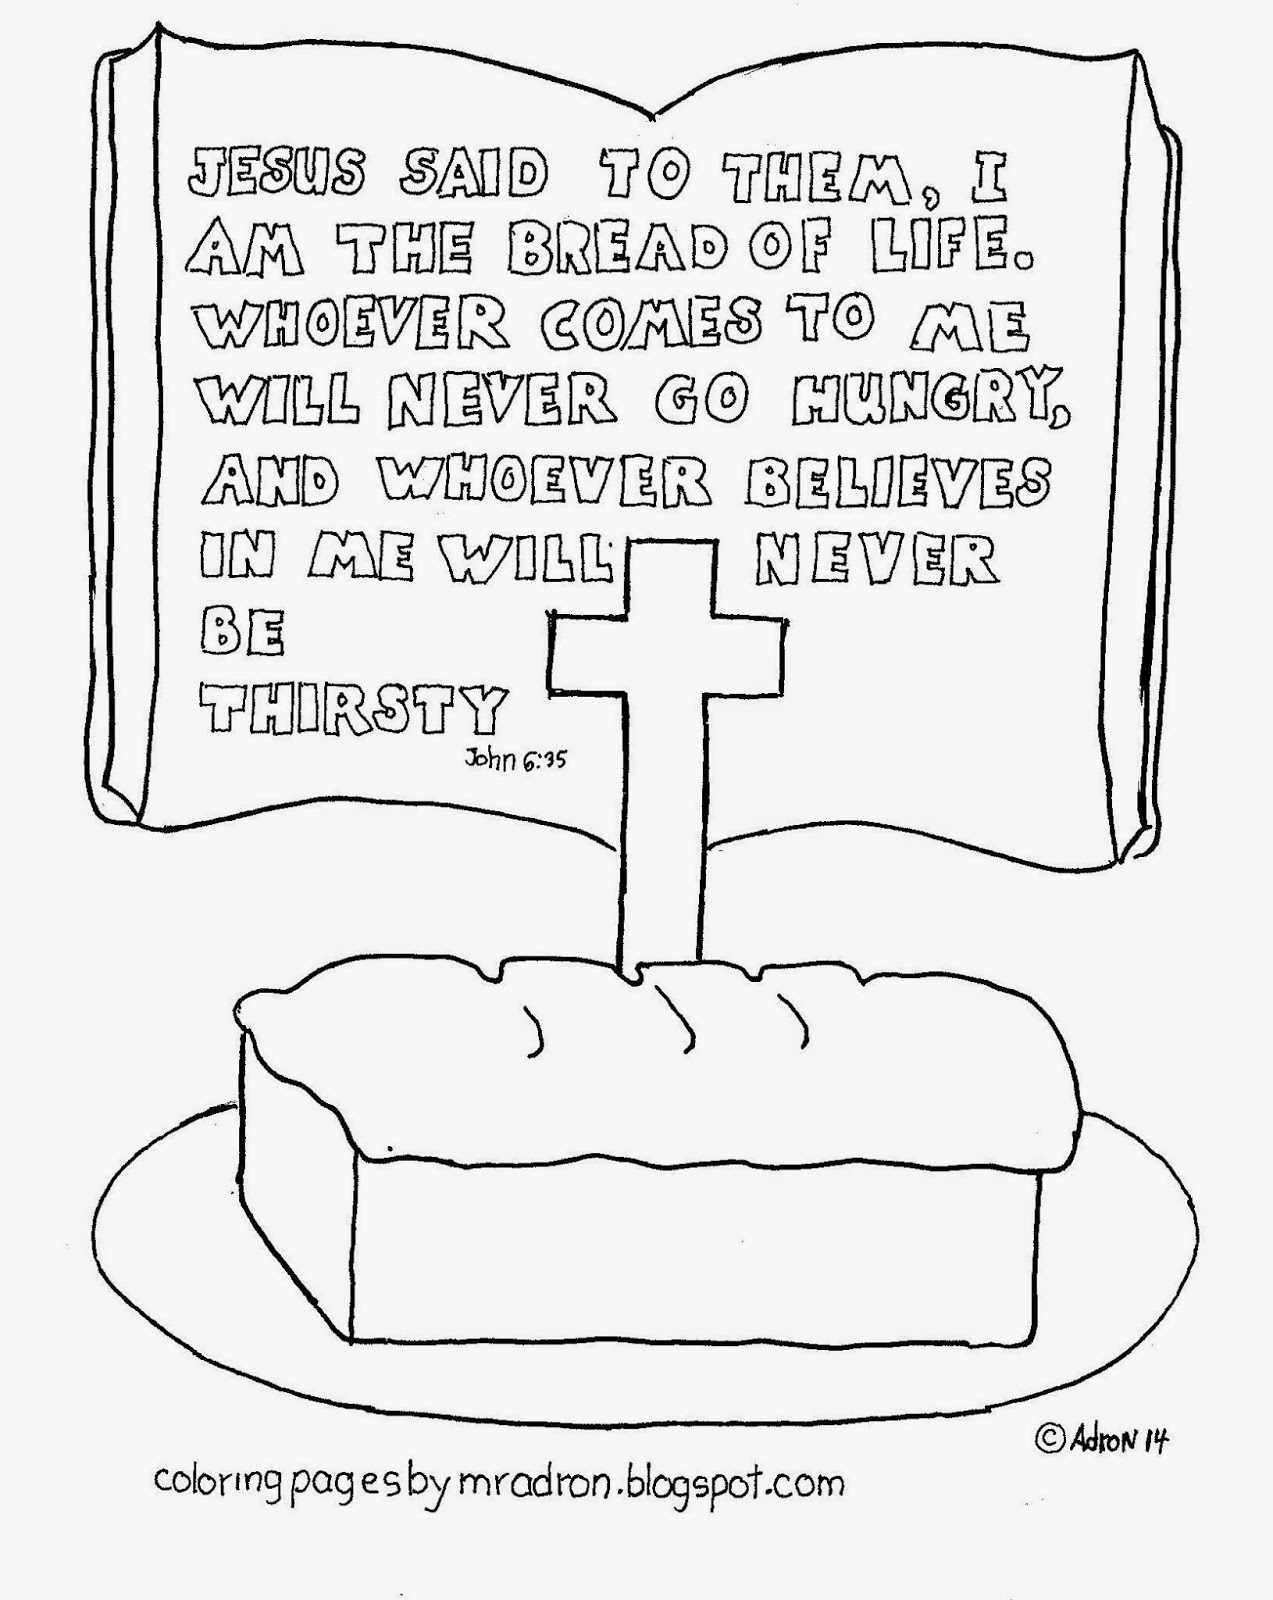 Coloring Pages For Kids By Mr Adron I Am The Bread Of